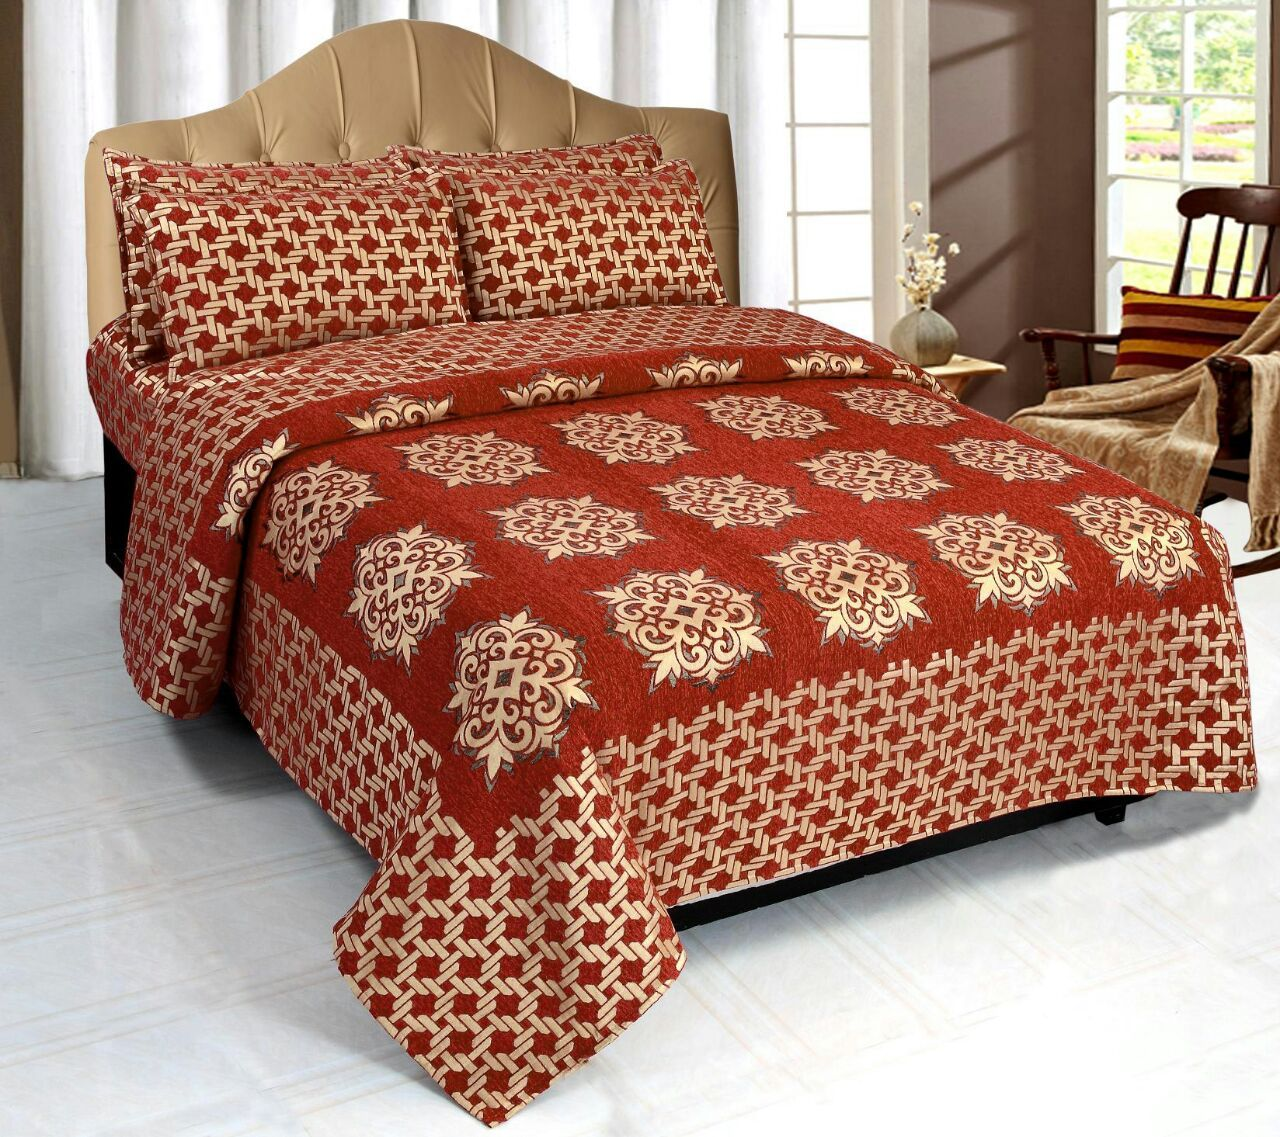 Network of Spades Chenille Bedcovers - G